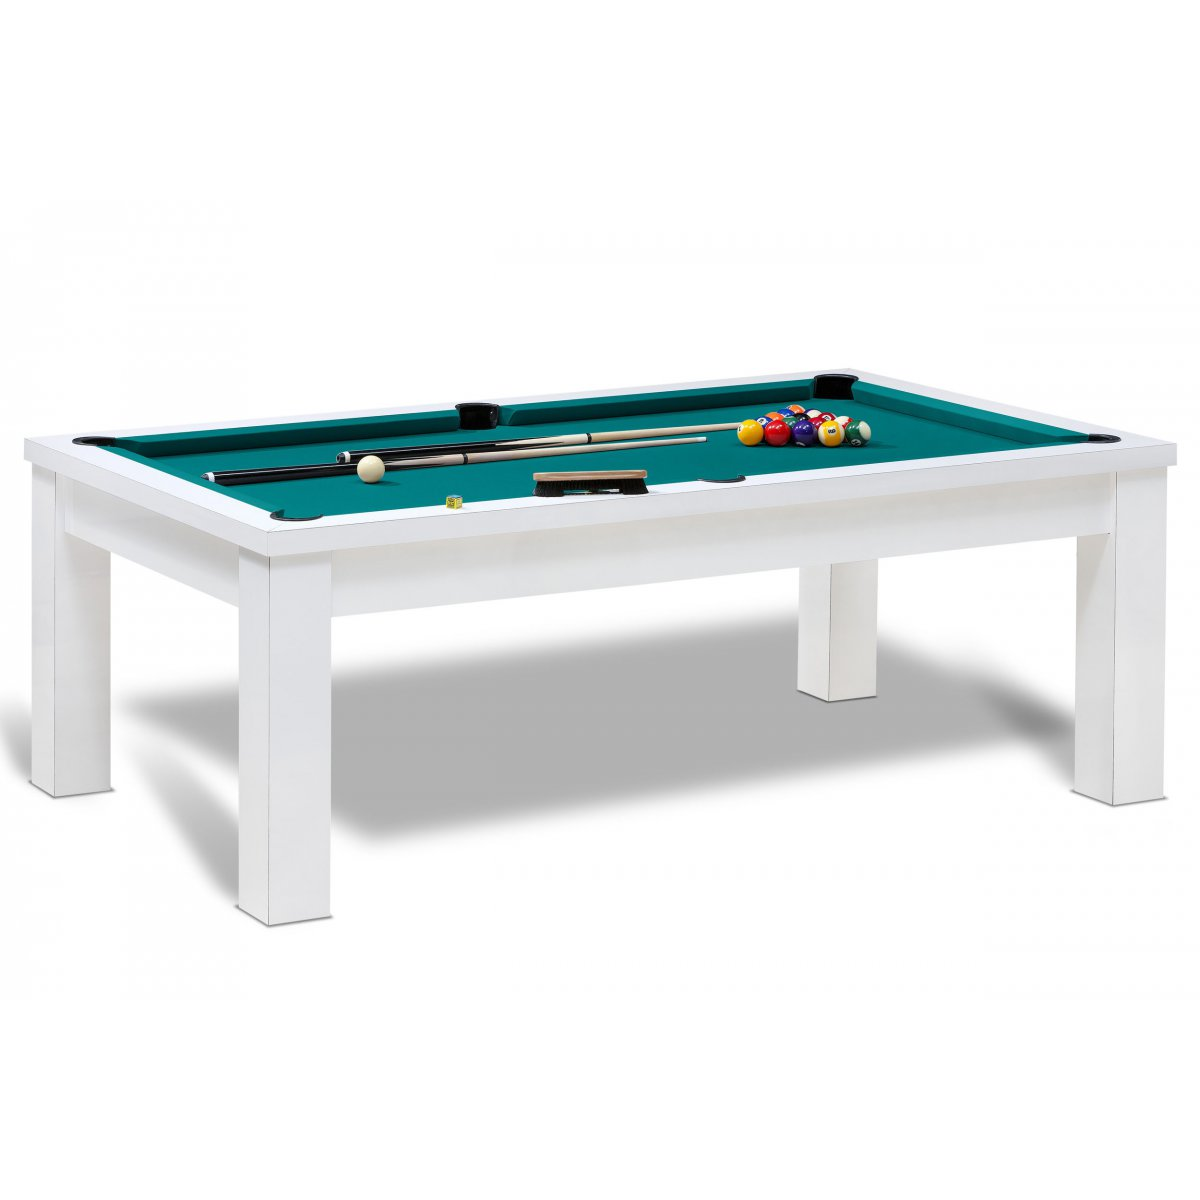 Billard am ricain et billard table pour jeux americain us - Table de salon billard ...